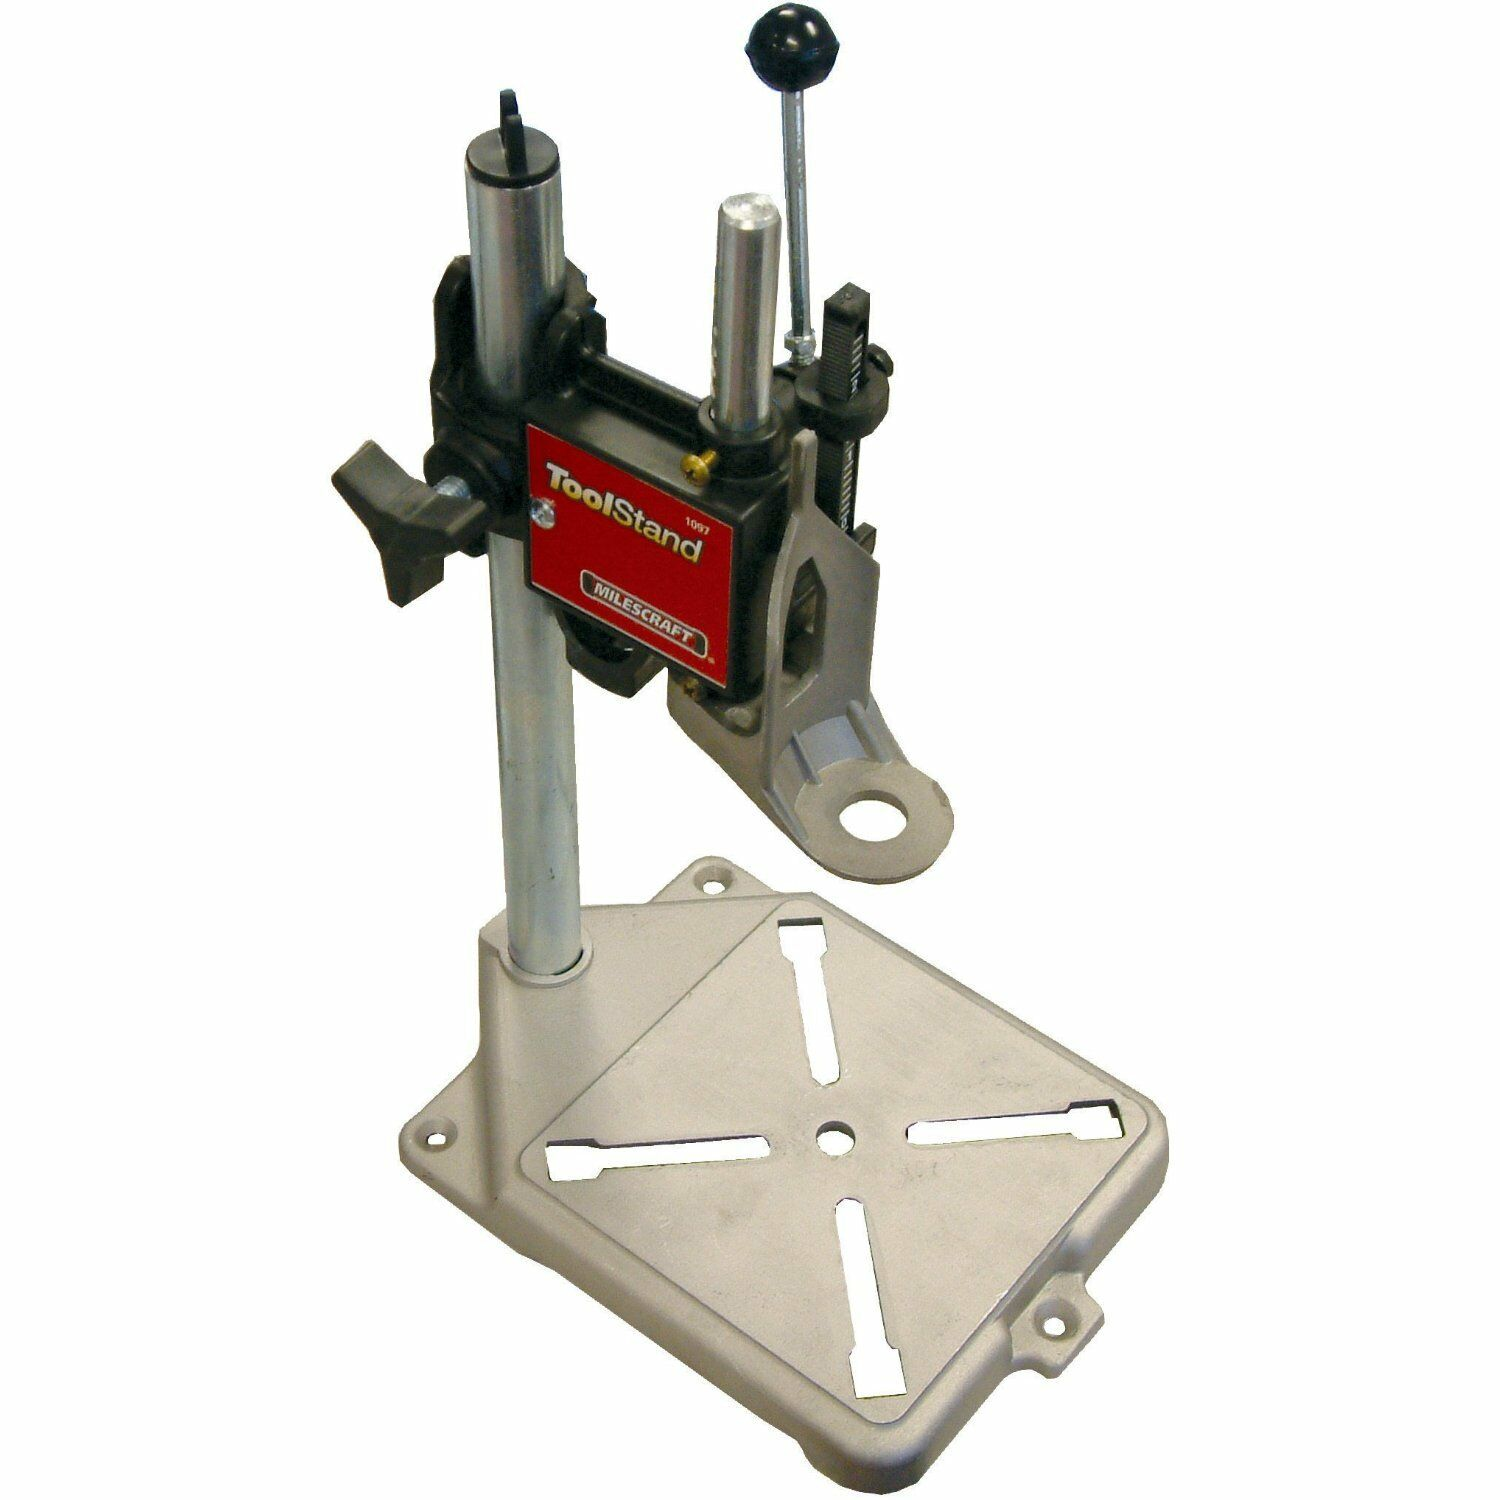 Milescraft INC. 1097 Tool Stand Drill Press For Rotary Tools Fits Dremel Work Station